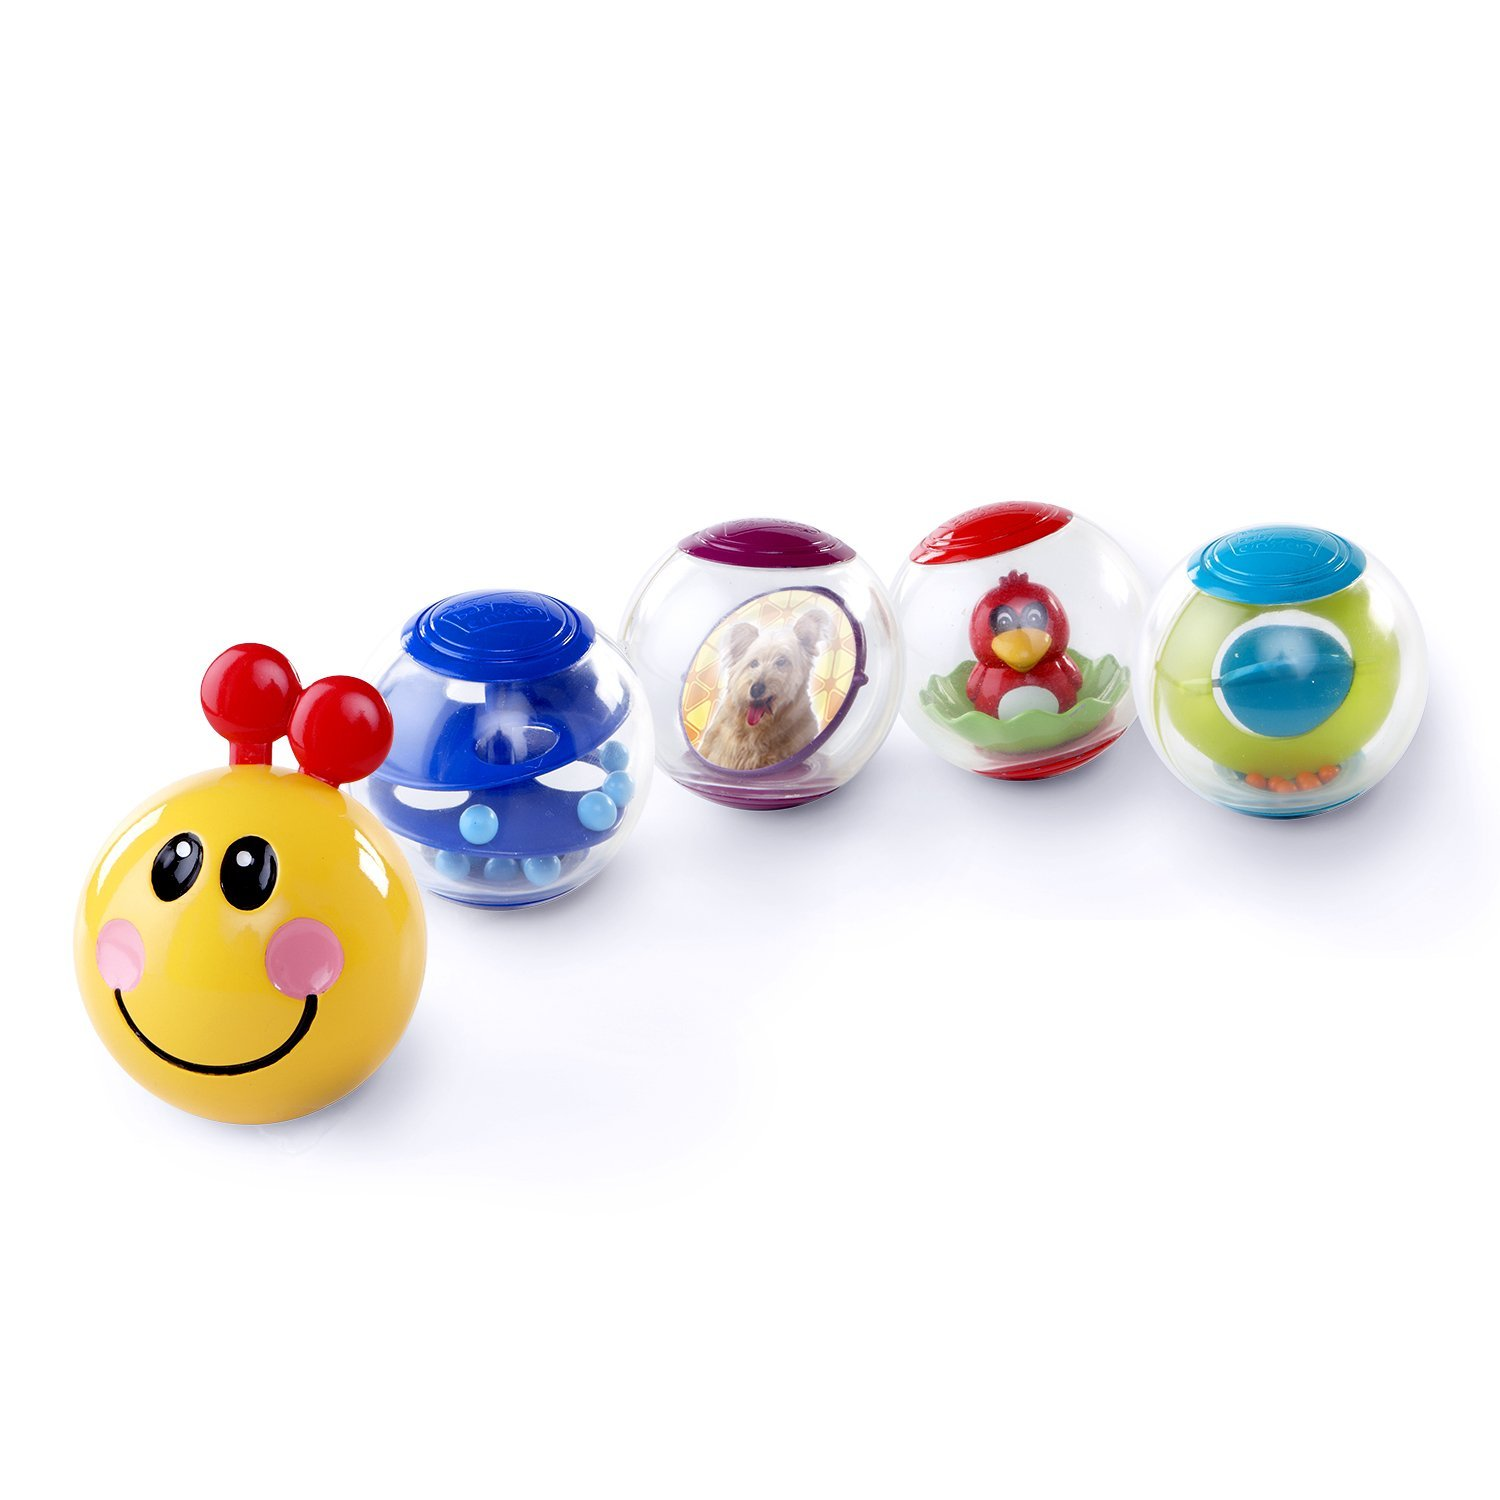 Baby Einstein Roller Pillar 5 Activity Balls, Kids Creative Sensory Relief Toy